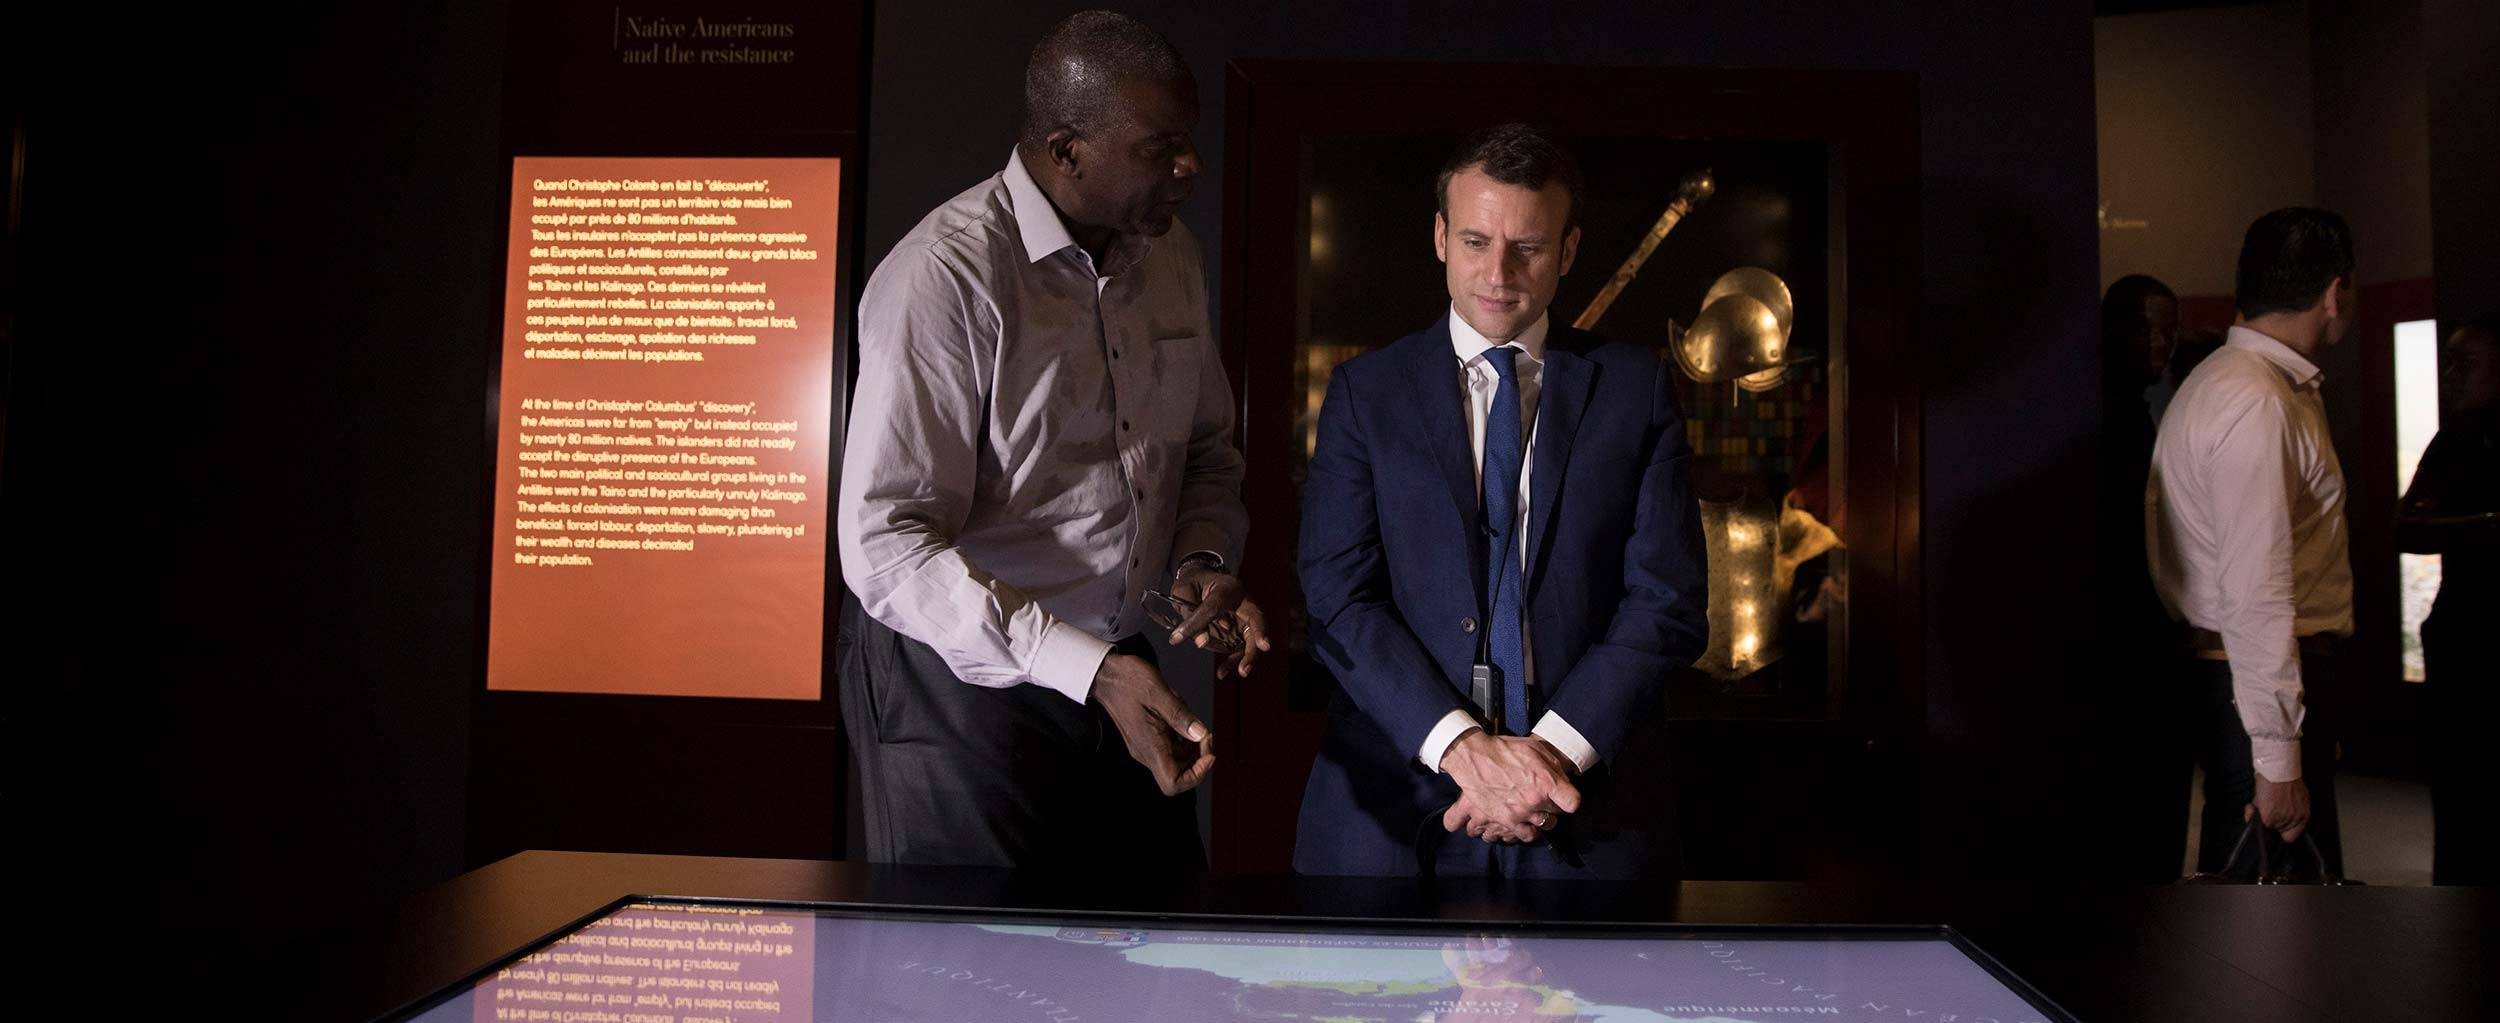 04-culture-musee-exposition-guadeloupe-emmanuel-macron